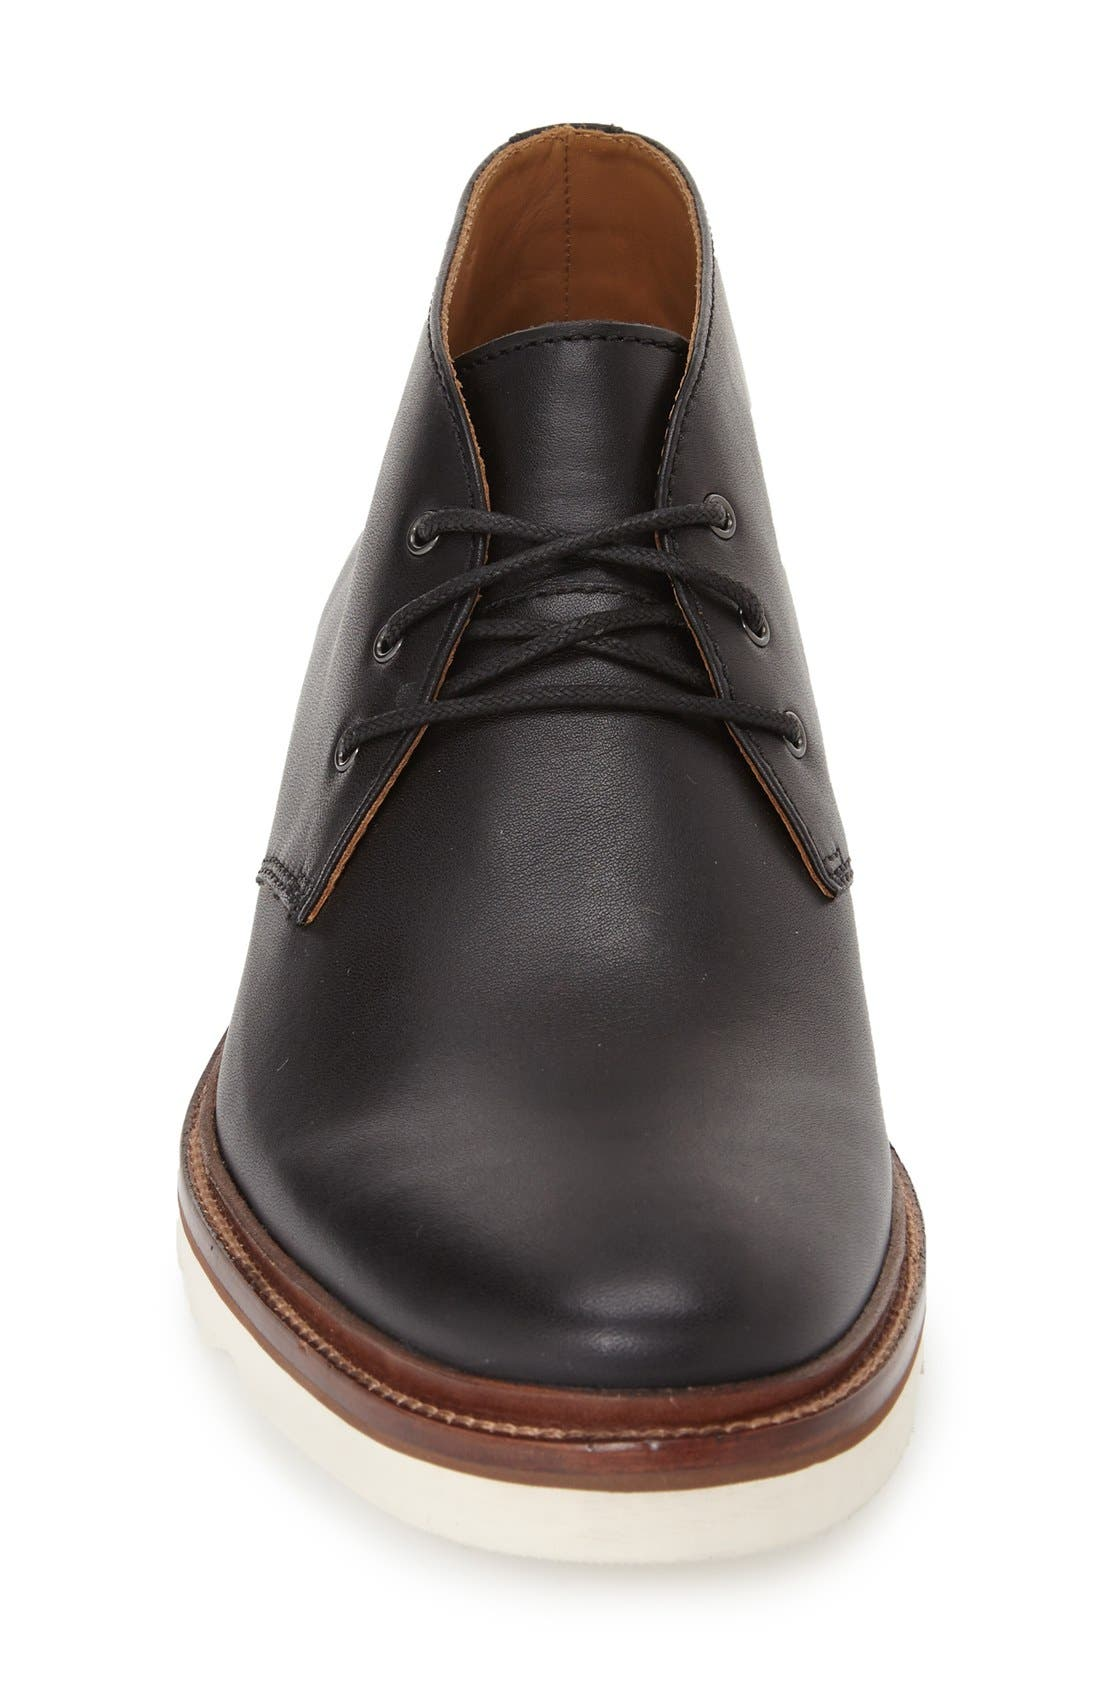 COACH,                             'Bedford' Chukka Boot,                             Alternate thumbnail 4, color,                             001